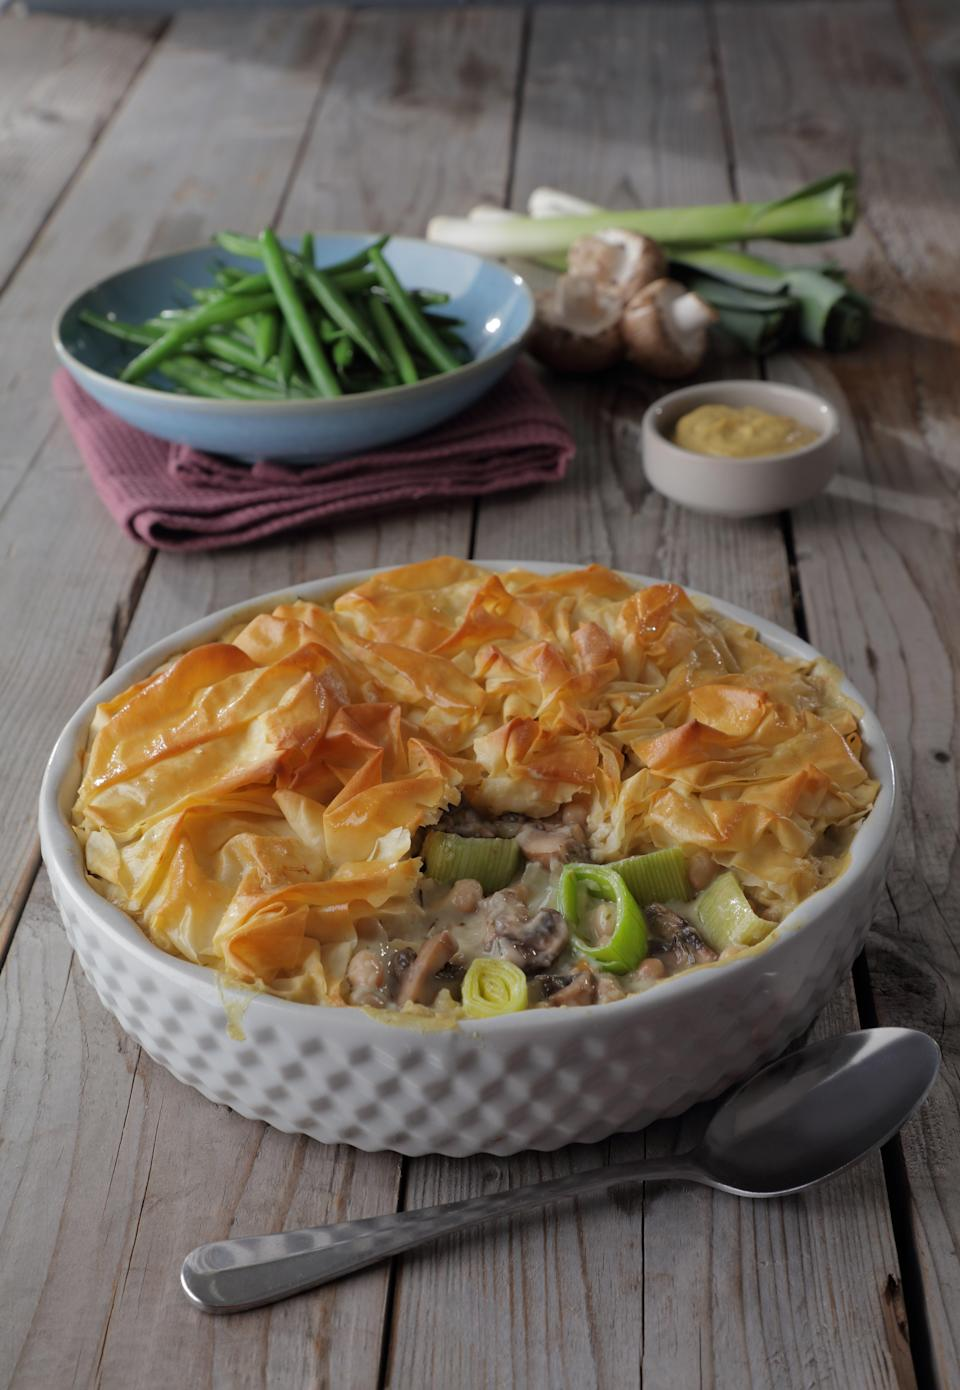 Who doesn't love a creamy, leeky pie?The Vegetarian Society